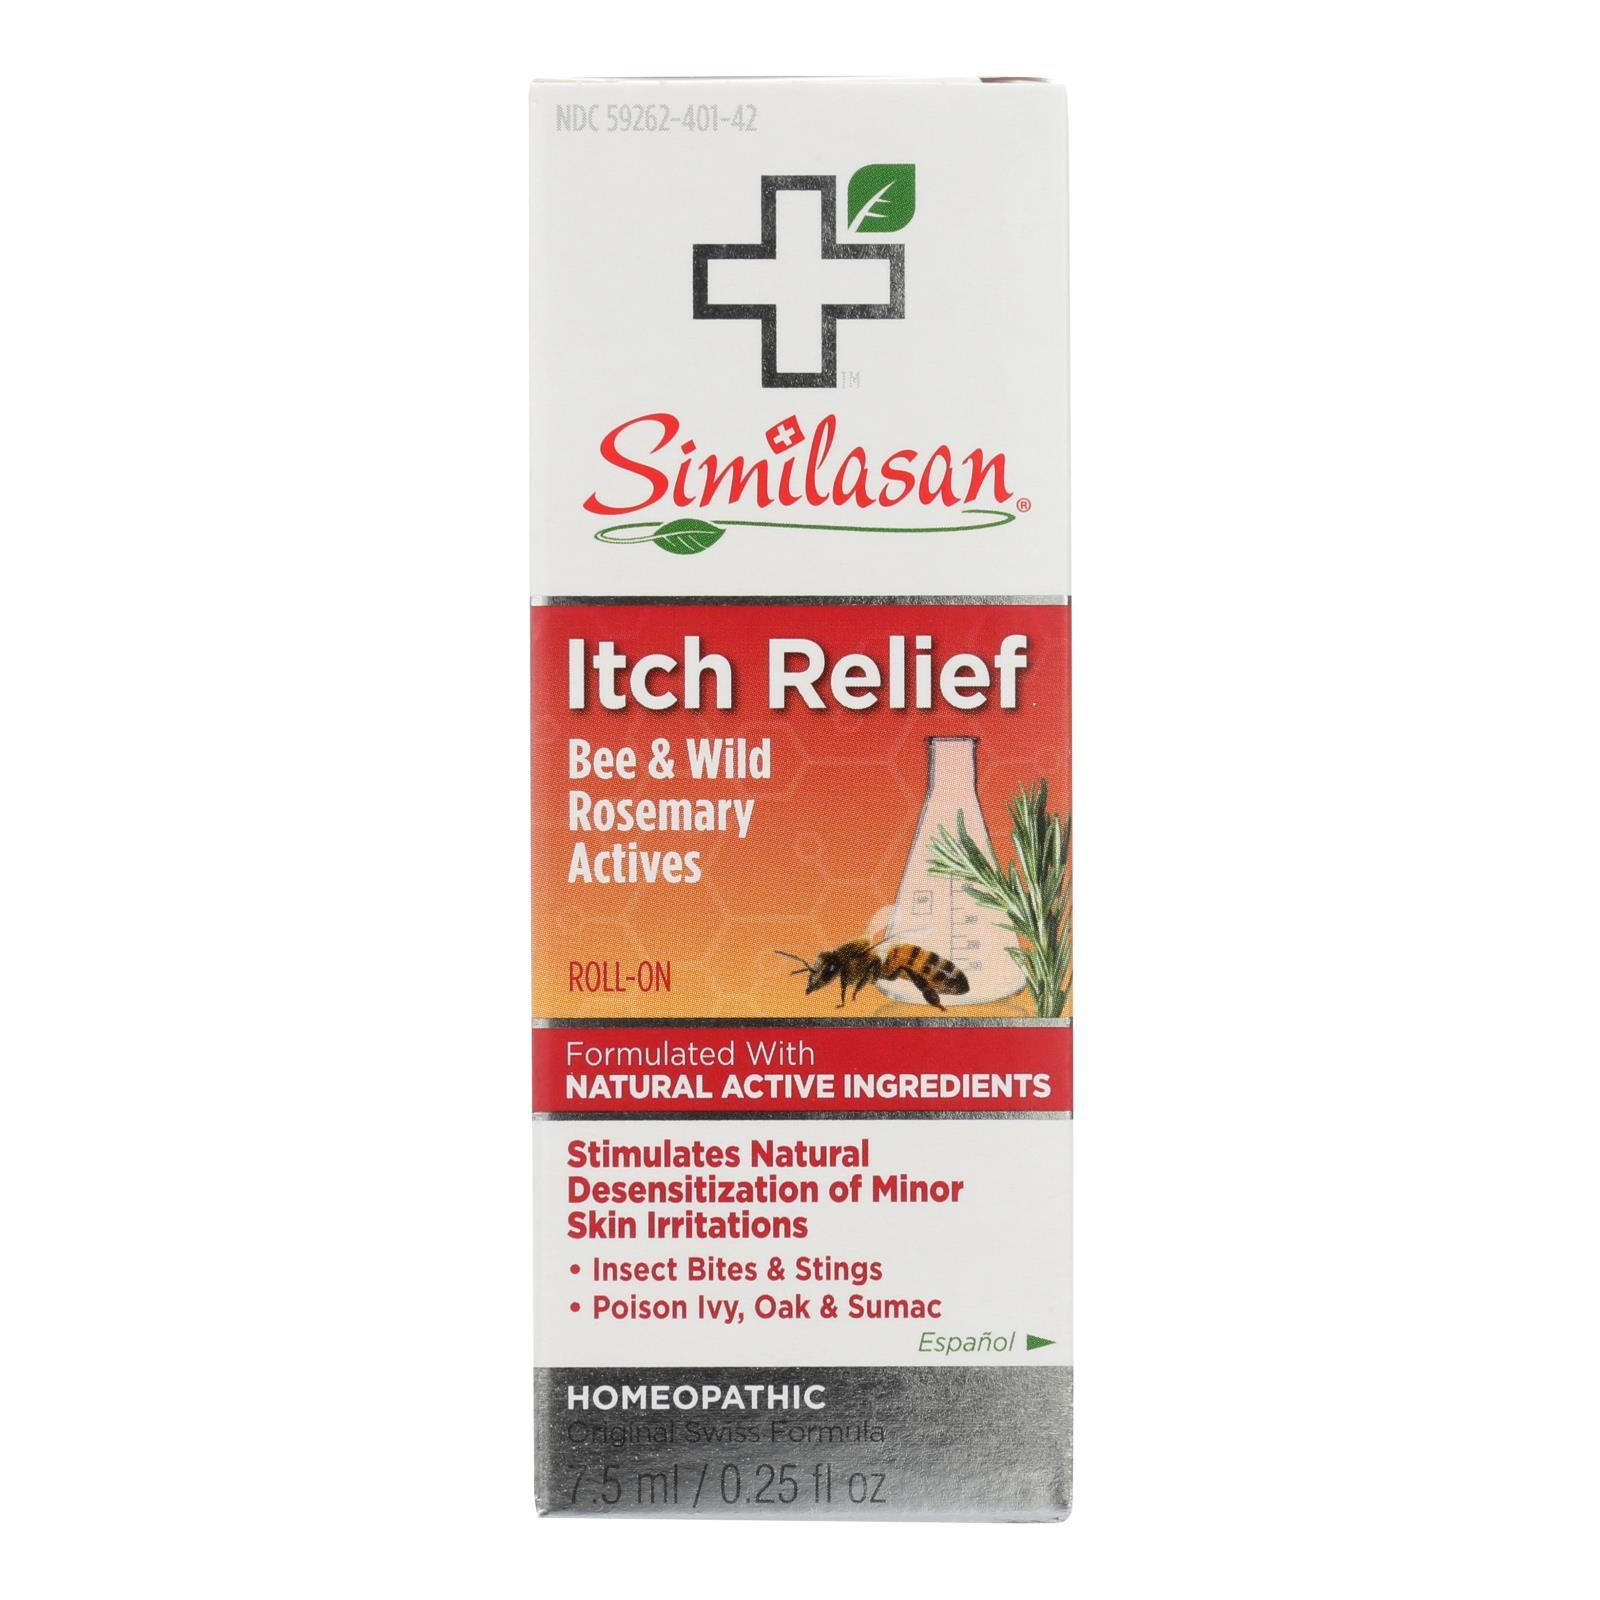 Similasan Itch Relief Roll On - 0.25 Fl Oz. - BeeGreen